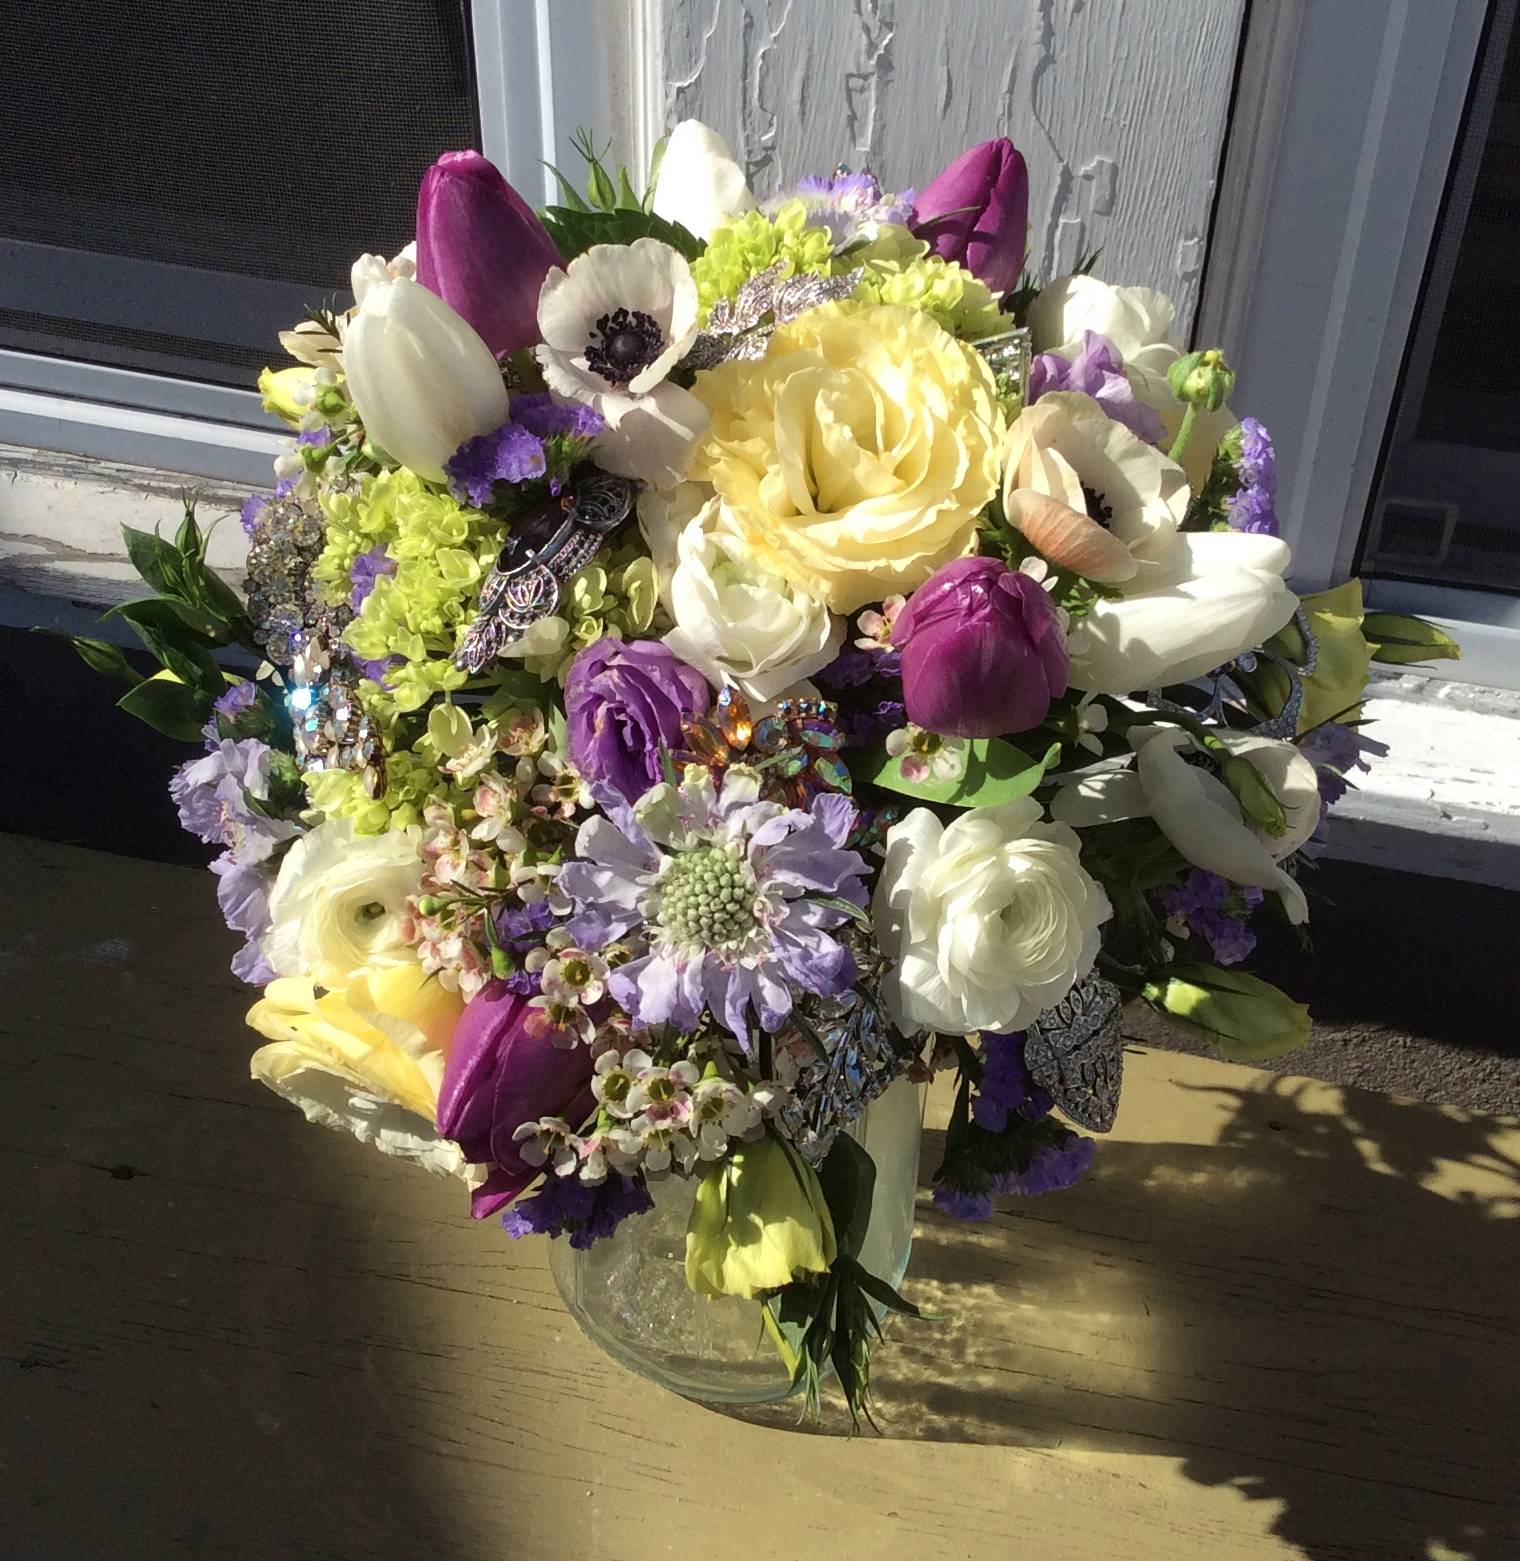 There were 10 rhinestone brooches in this bouquet.  Their sparkle enhanced the lisianthus, scabiosa, ranunculus, anemones, hydrangea, and tulips that made this bouquet and ode to spring..